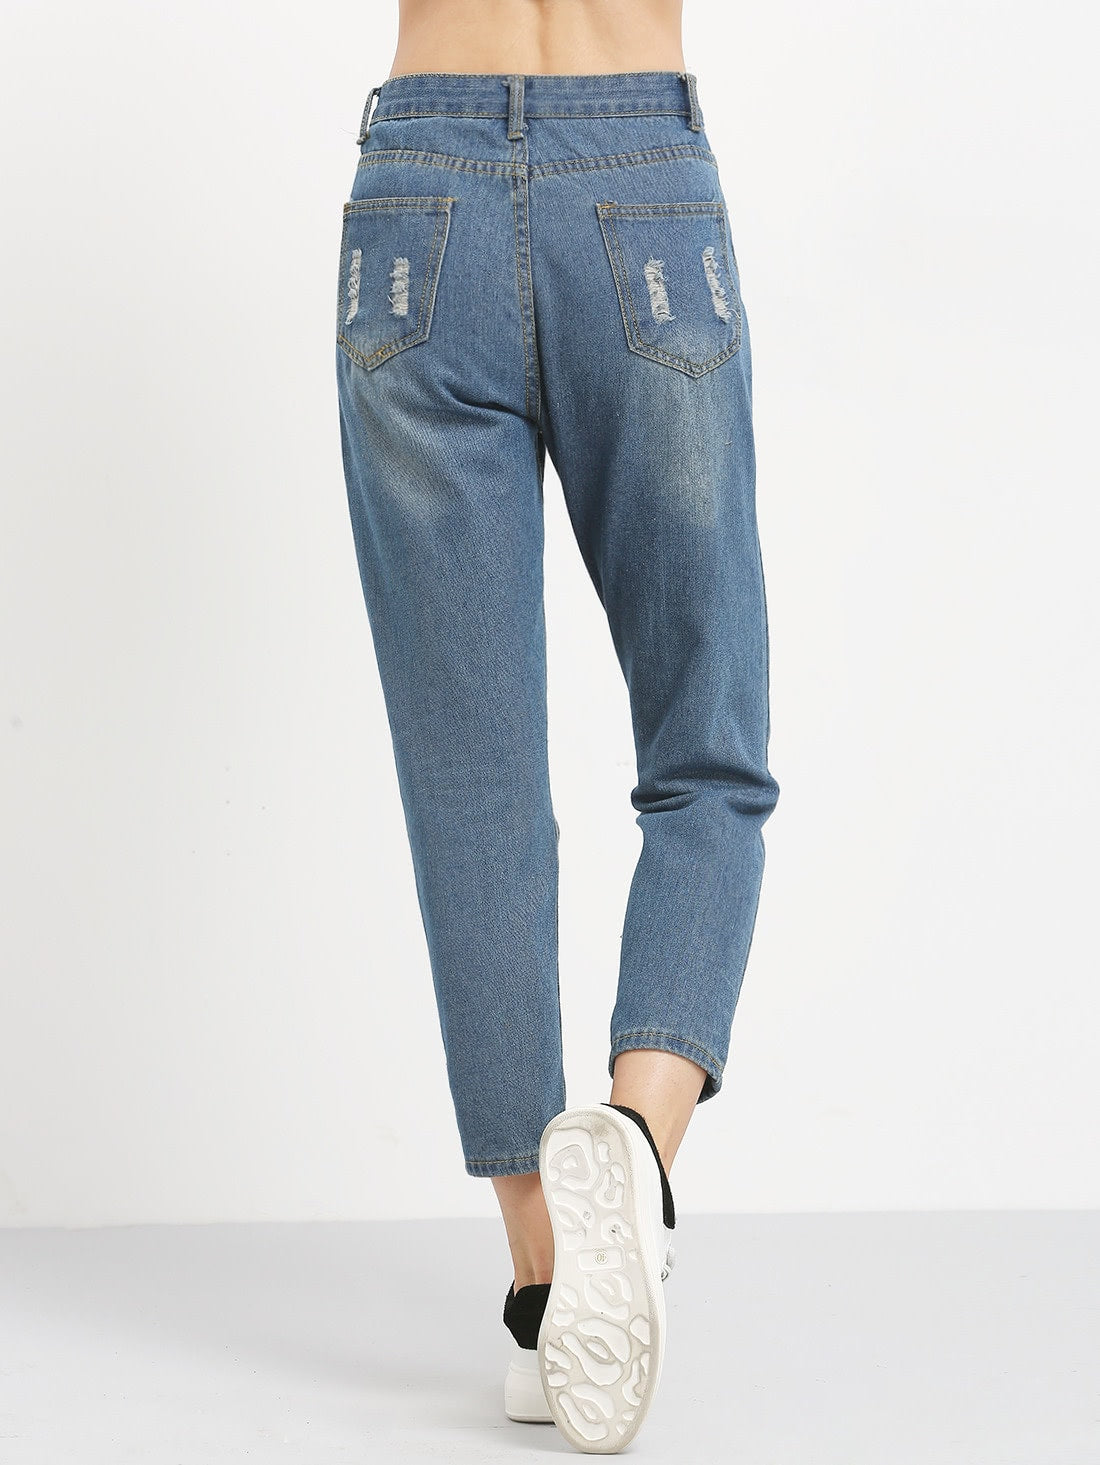 Distressed Ankle Jeans - spiffy-fashion-boutique